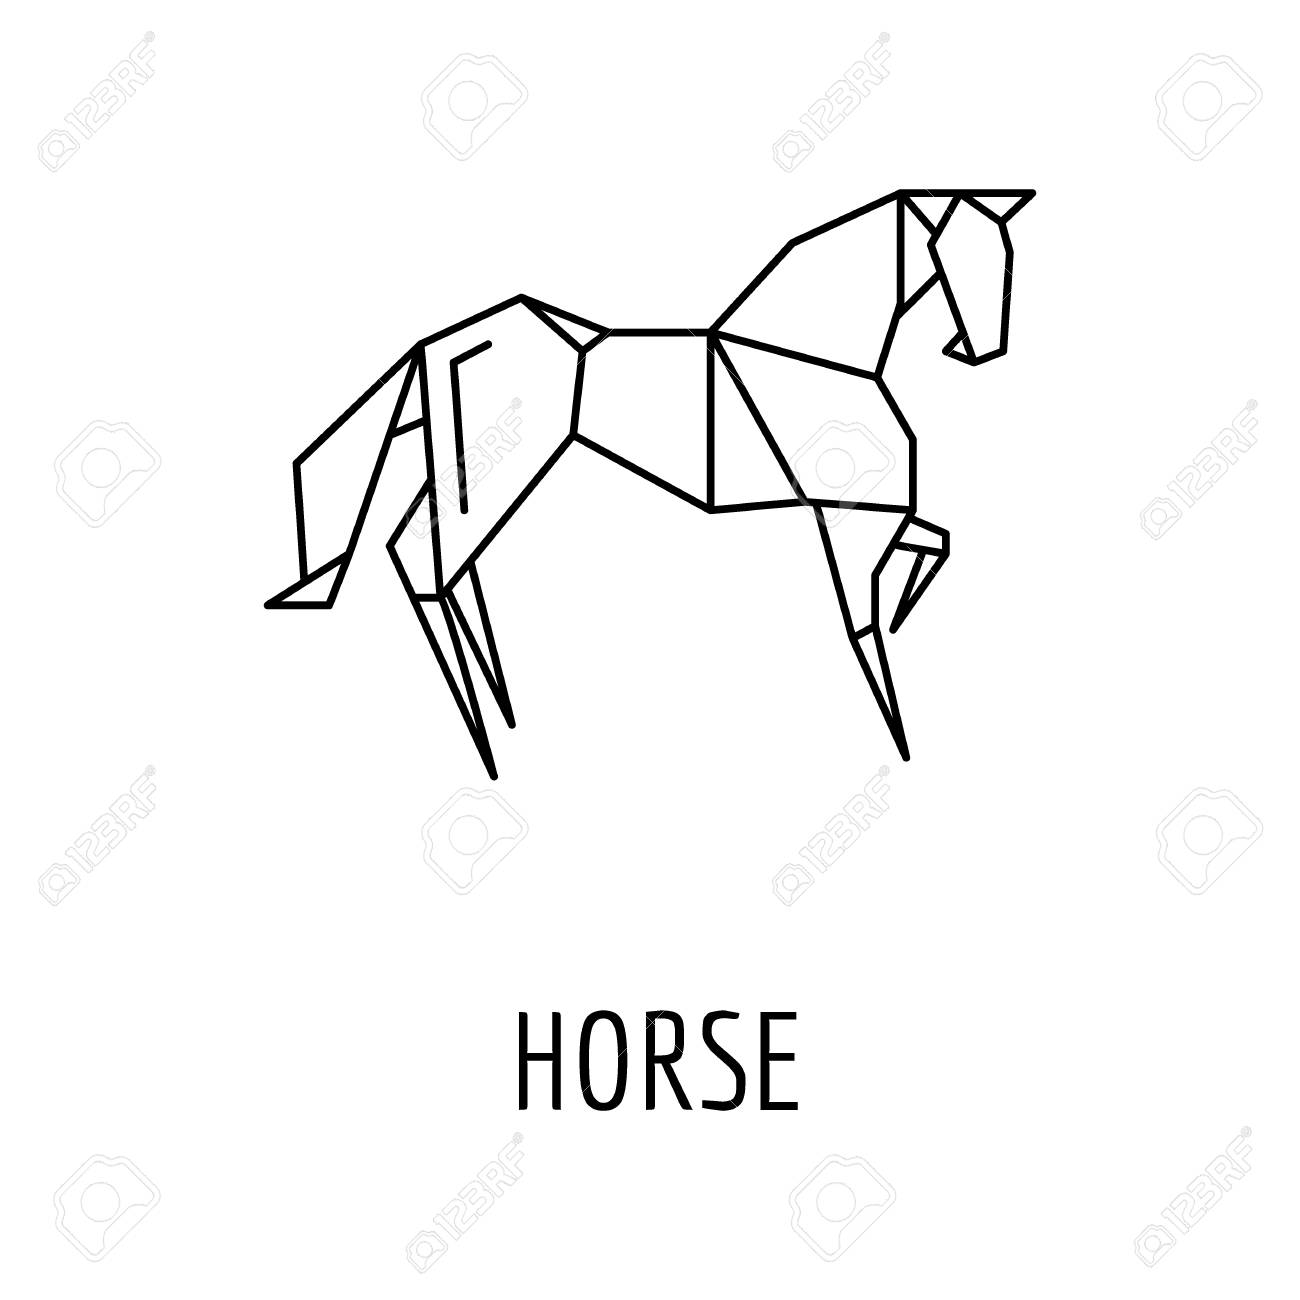 Origami Horse Icon Outline Vector For Web Design Isolated On White Background